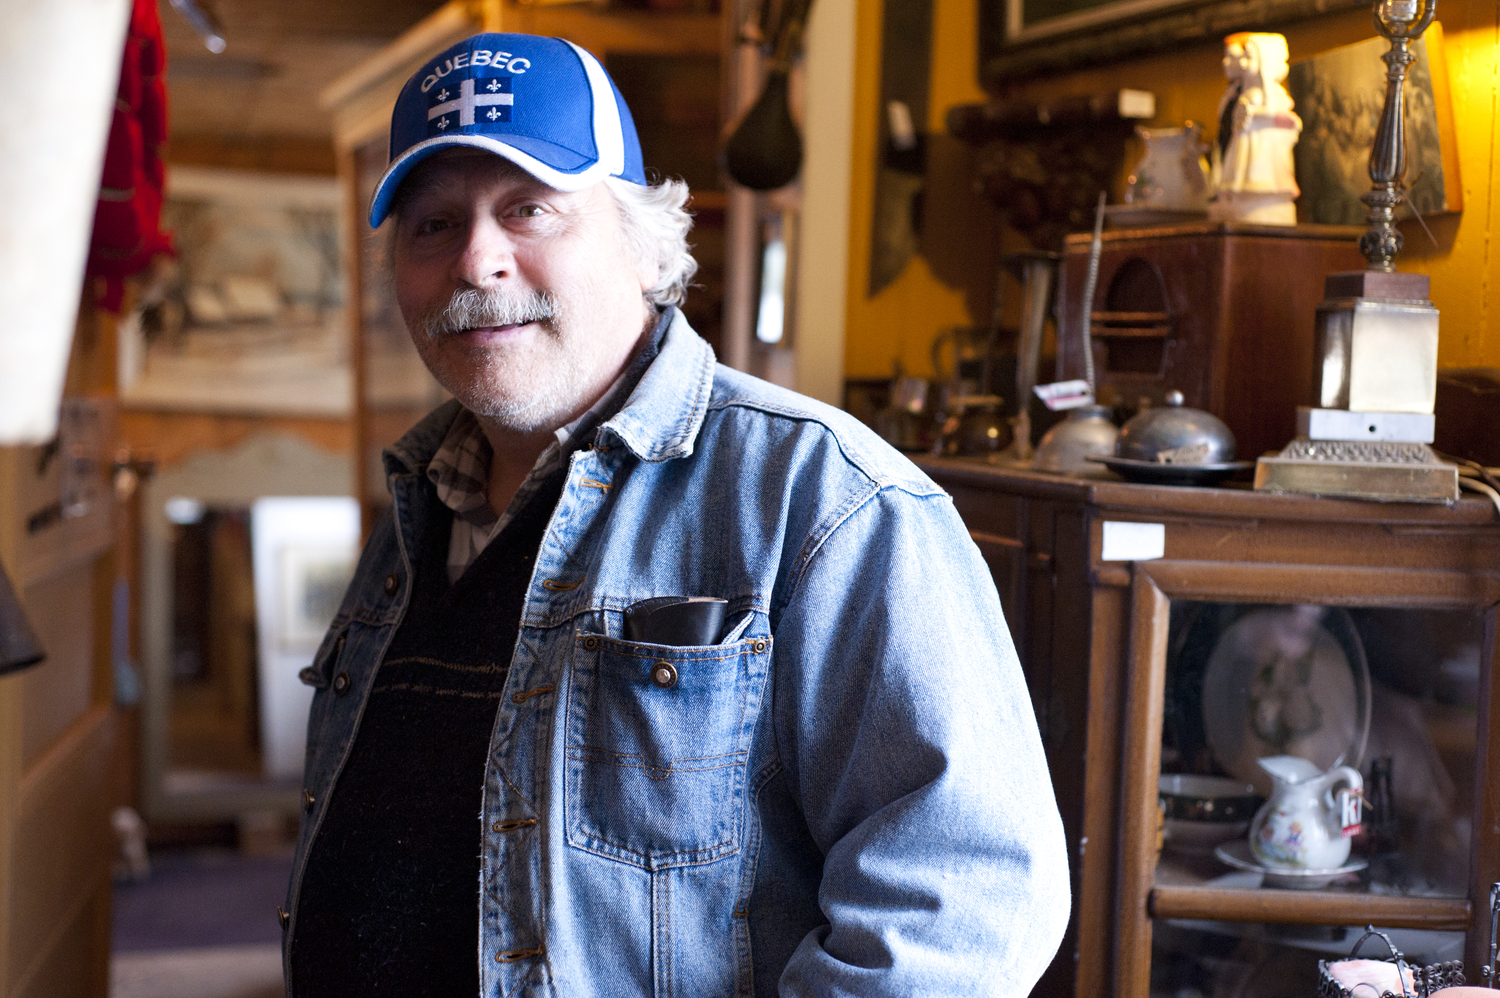 Shop owner Bernard Benoit discusses his antique shop, Chez Mon Oncle, in Sabrevois, Quebec, May 22, 2014. He has owned his shop, which features everything from antique tea pots to a taxidermic dear head, for 26 years.